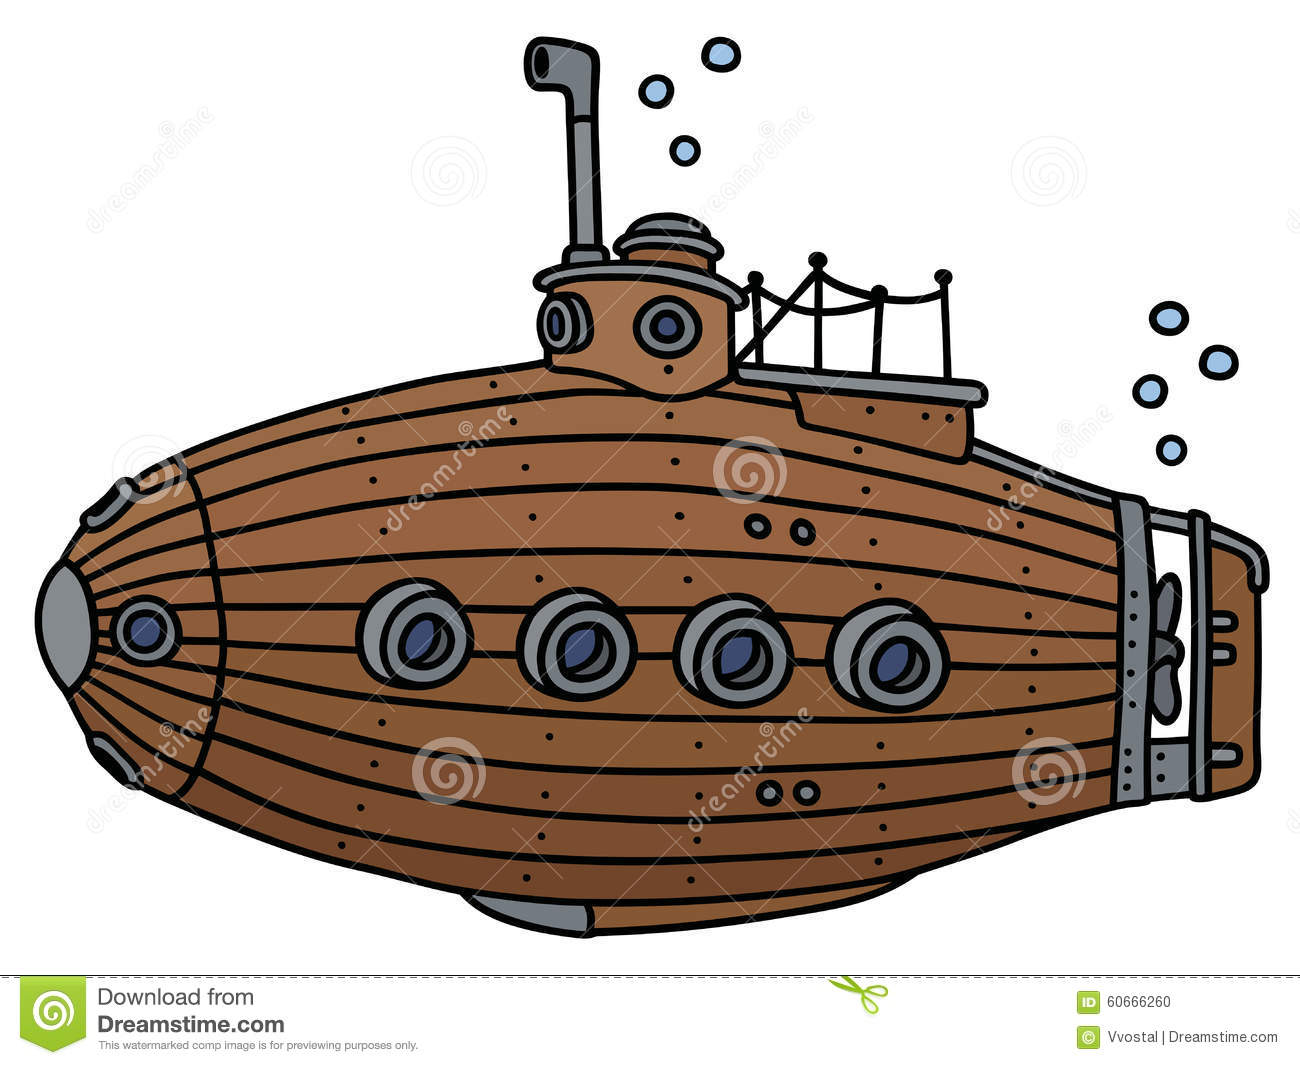 Old Wooden Submarine Stock Vector - Image: 60666260